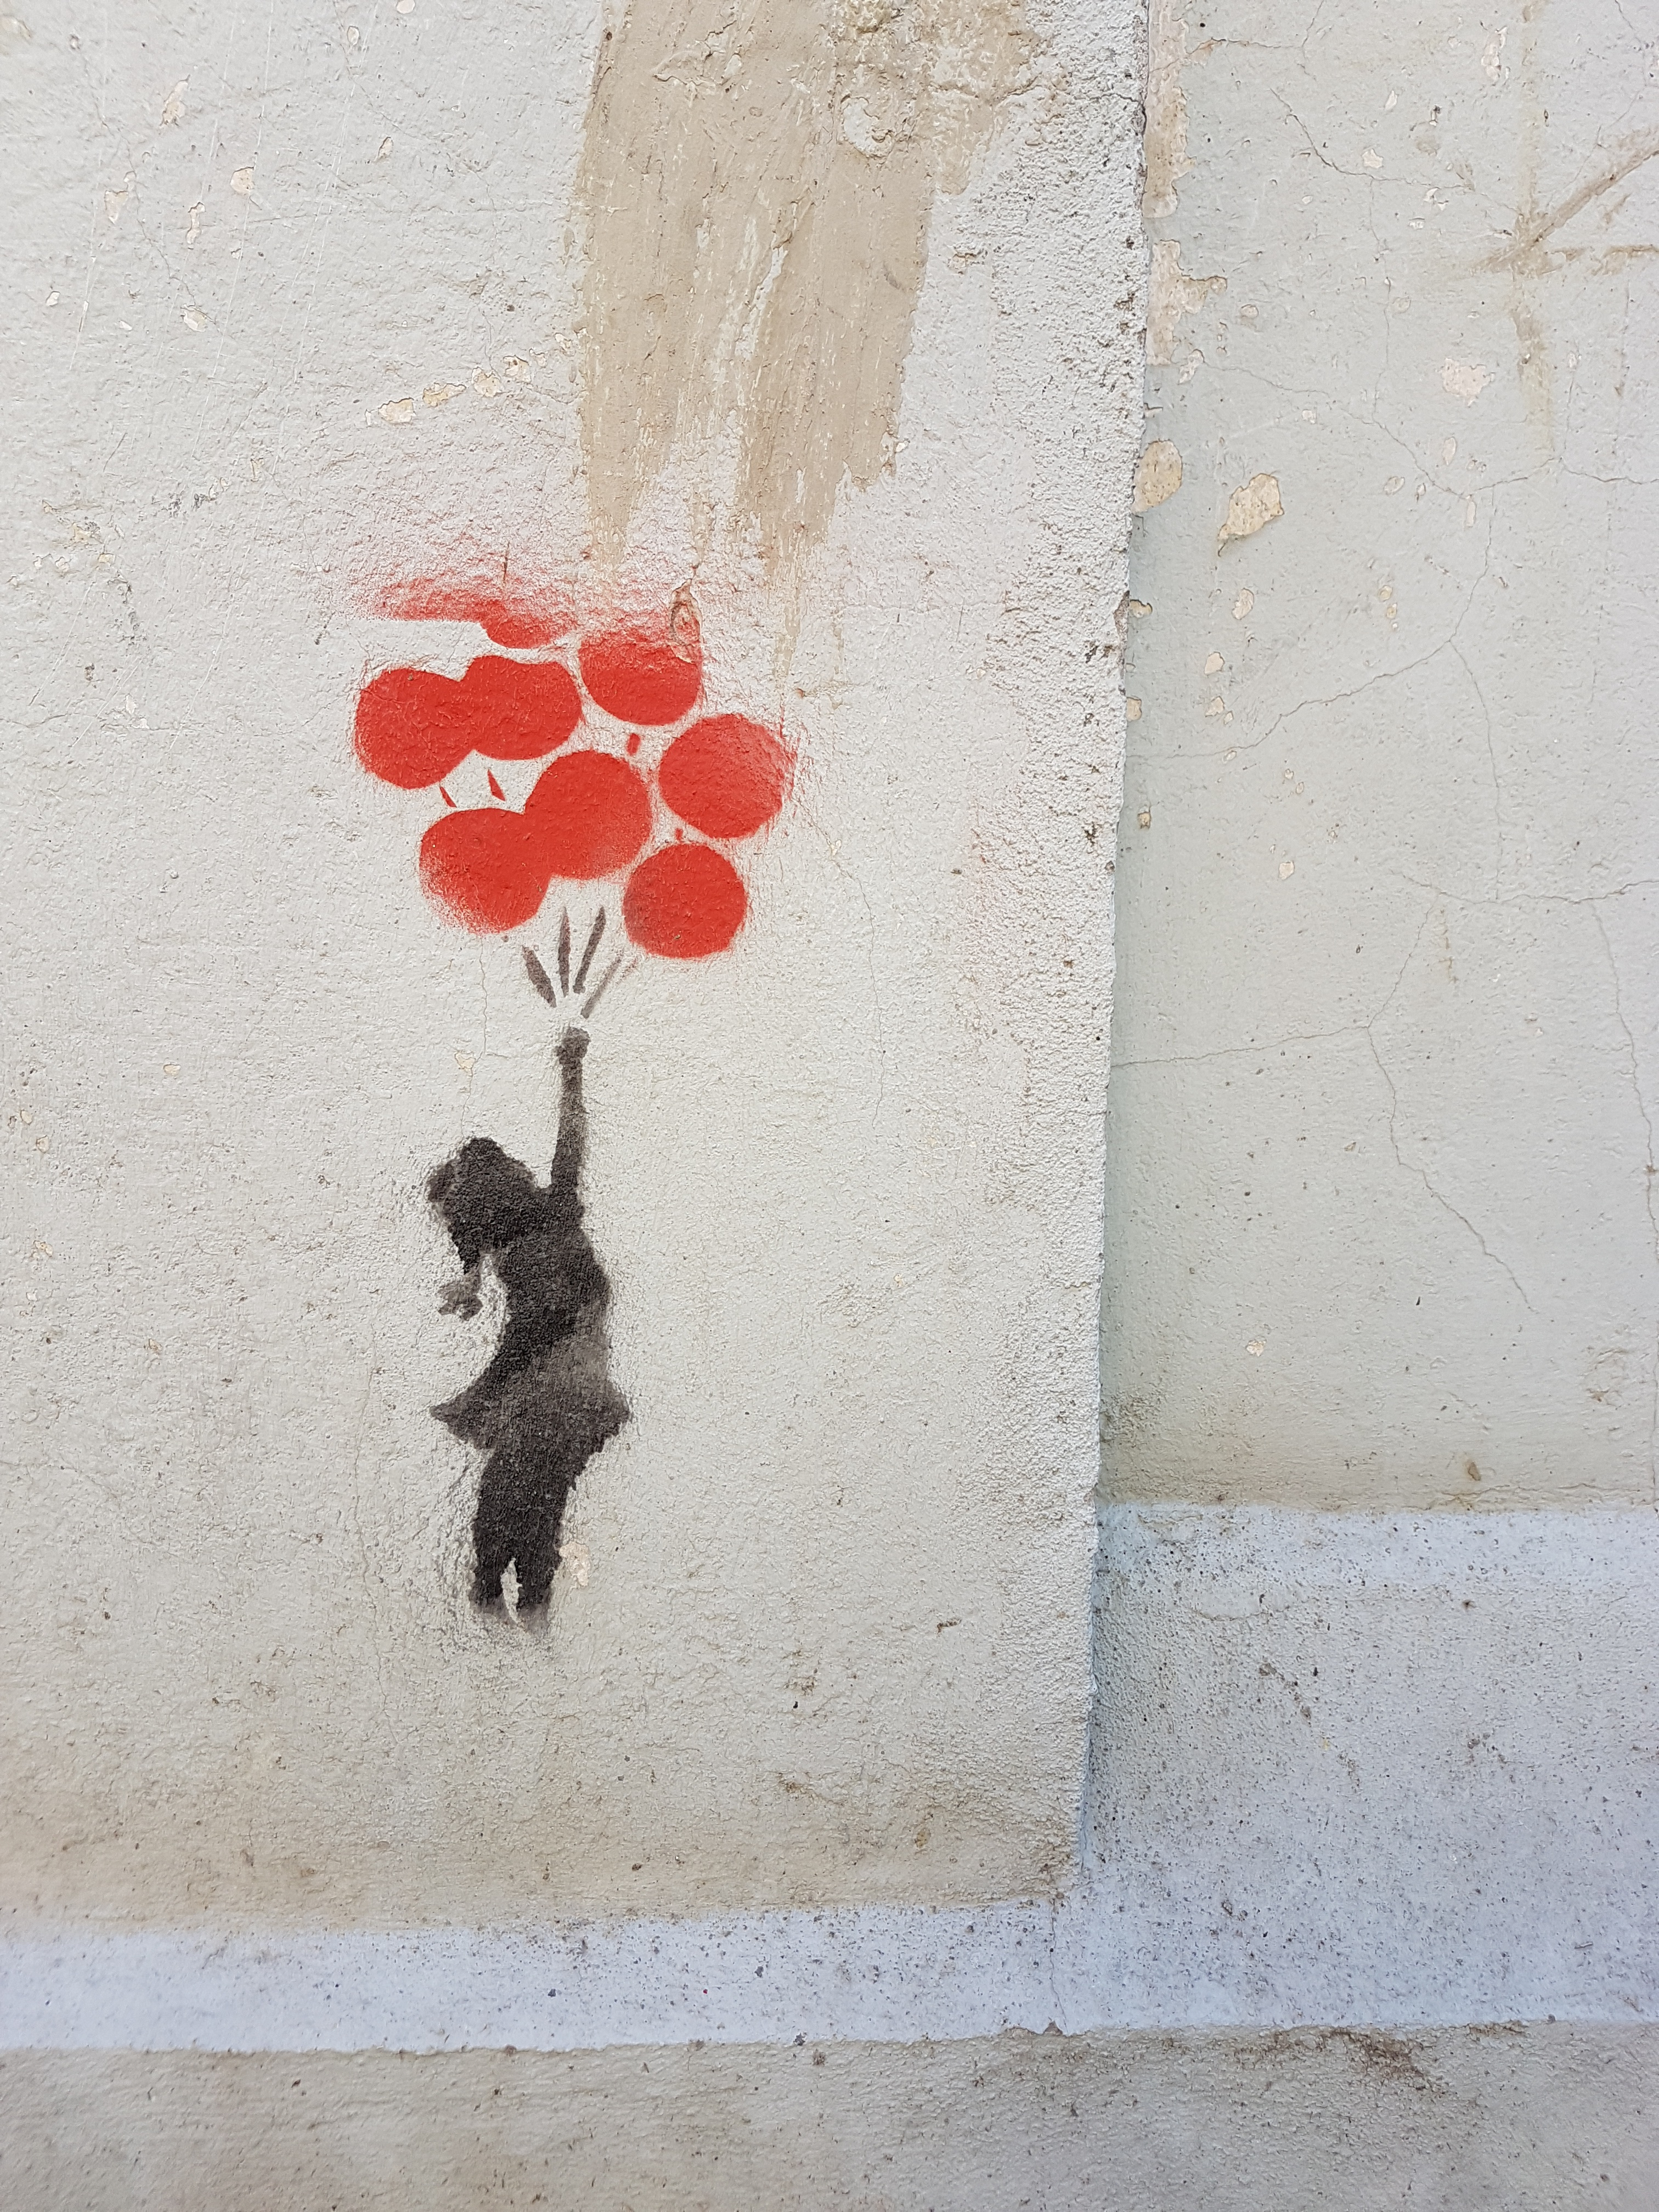 98274 Screensavers and Wallpapers Balloons for phone. Download Art, Balloons, Paint, Wall, Graffiti, Child, Street Art pictures for free